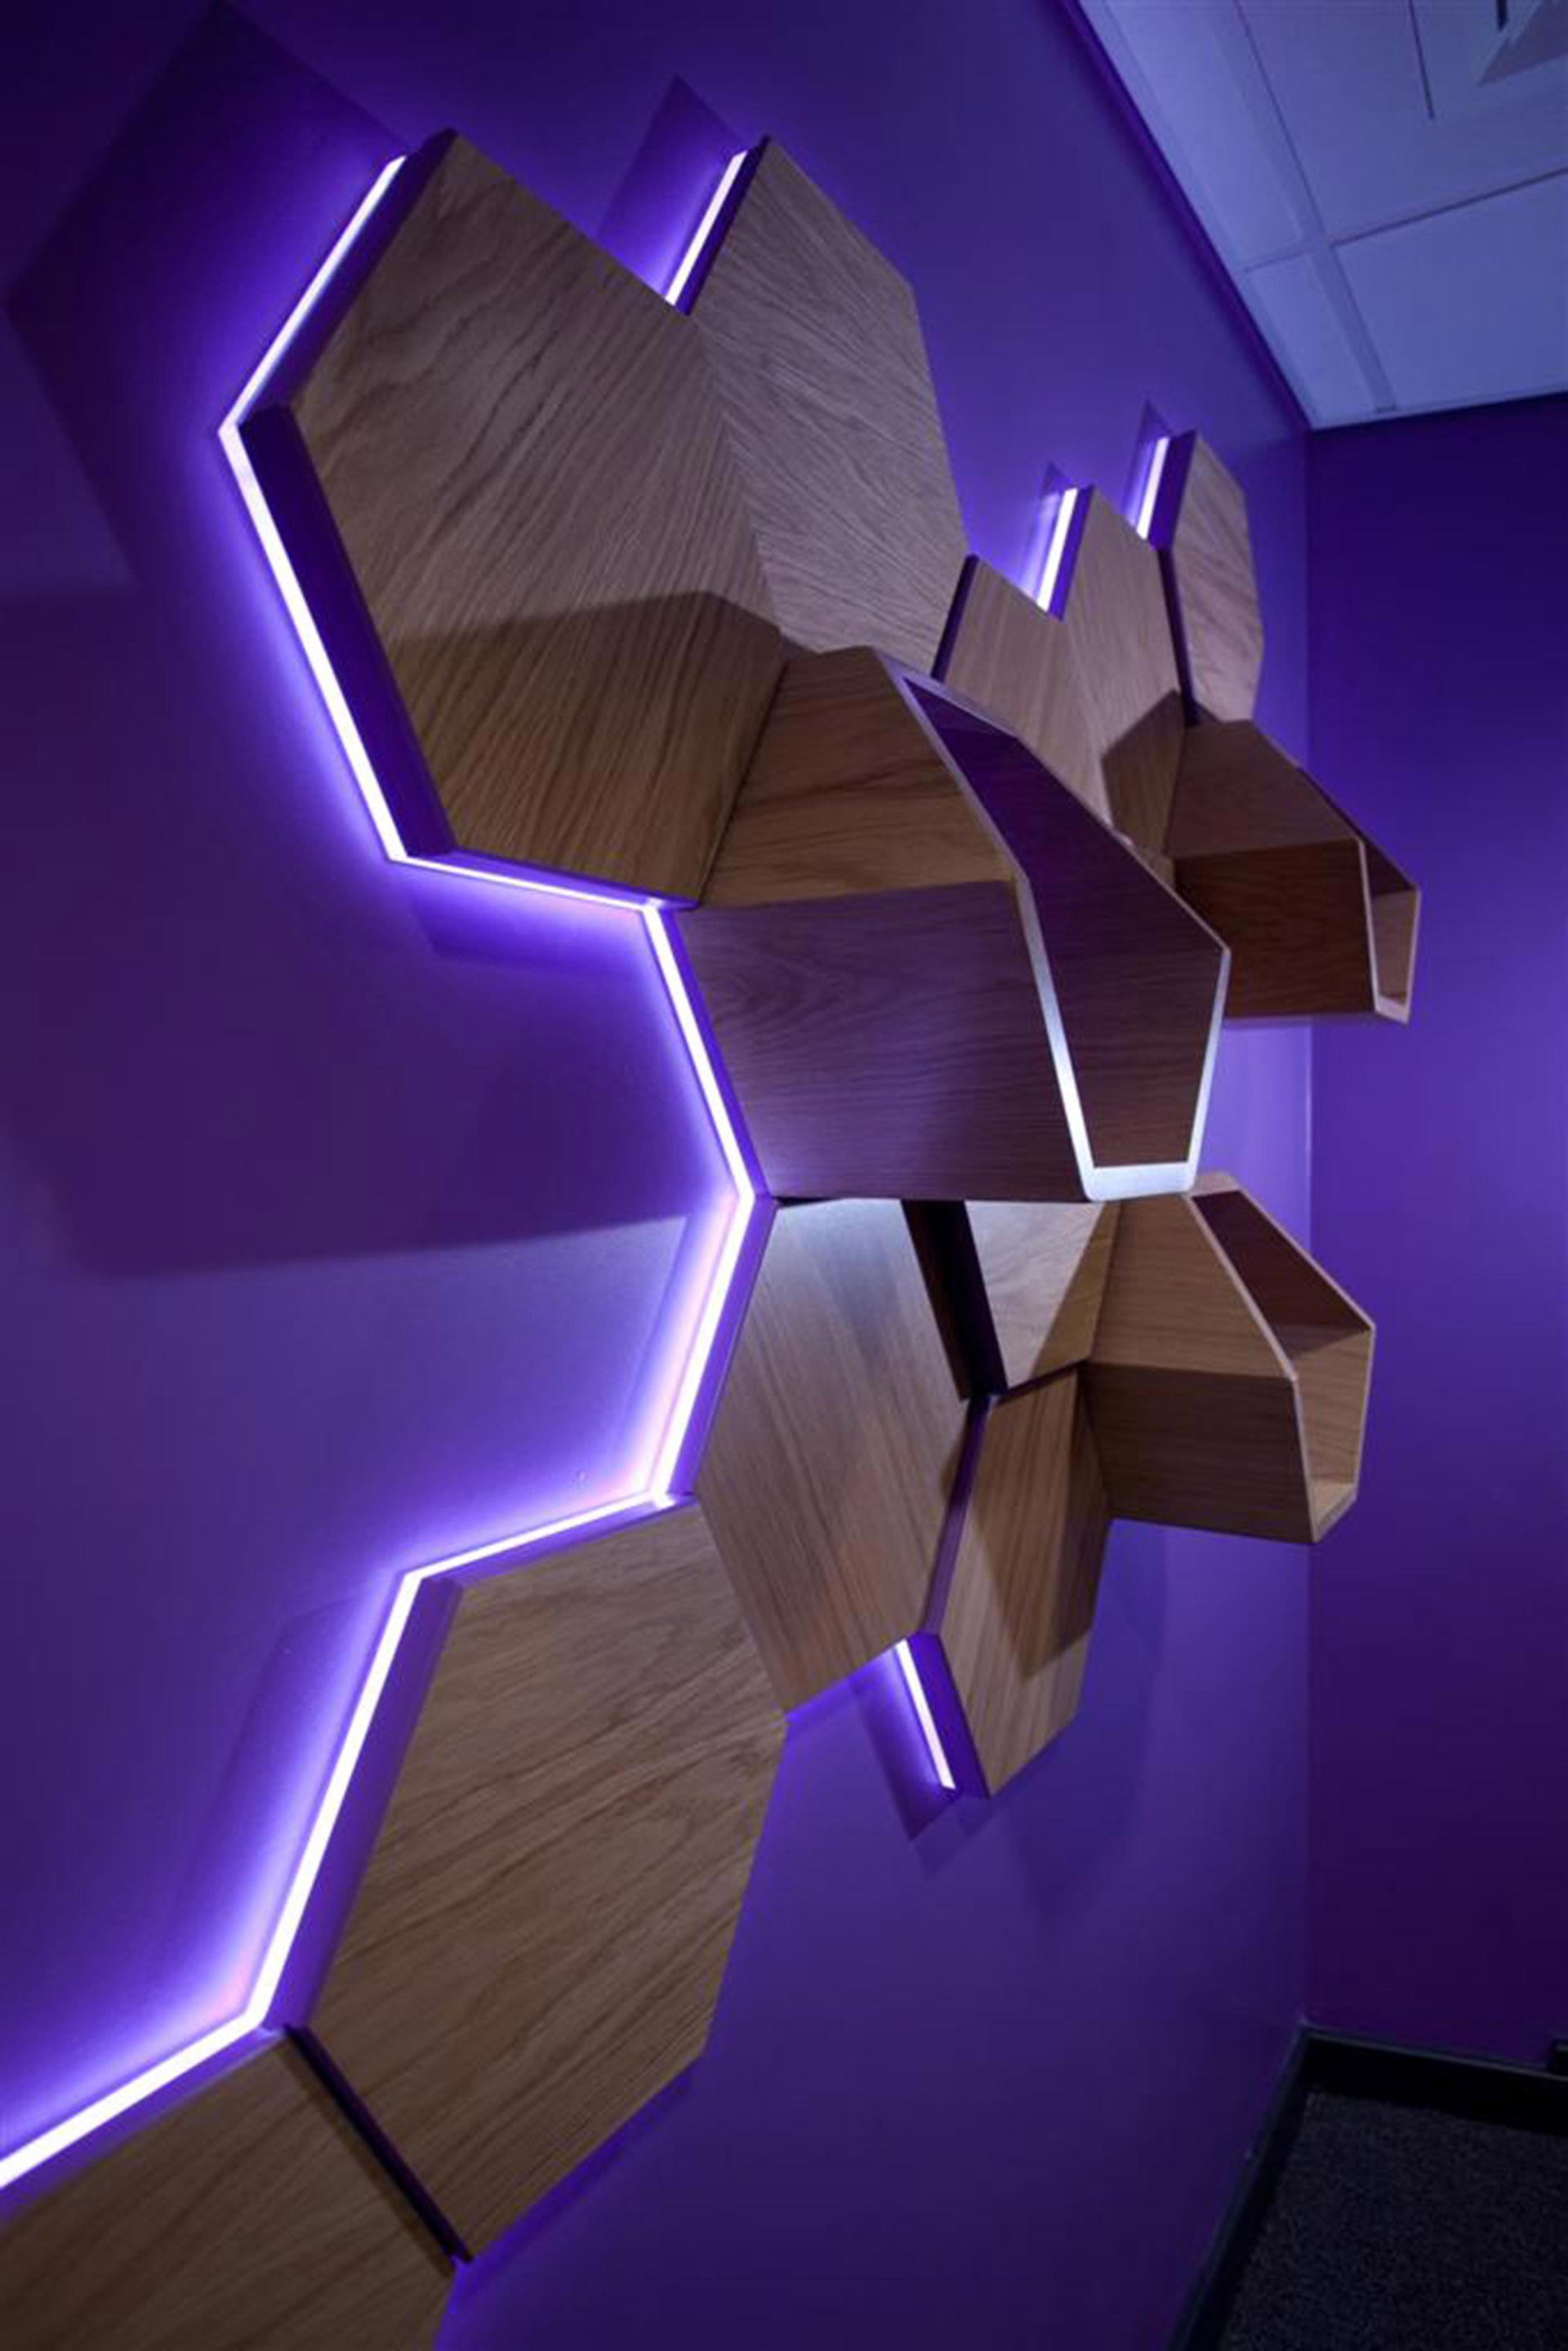 LED back lit timber shelving unit at Young Person's Resource Center